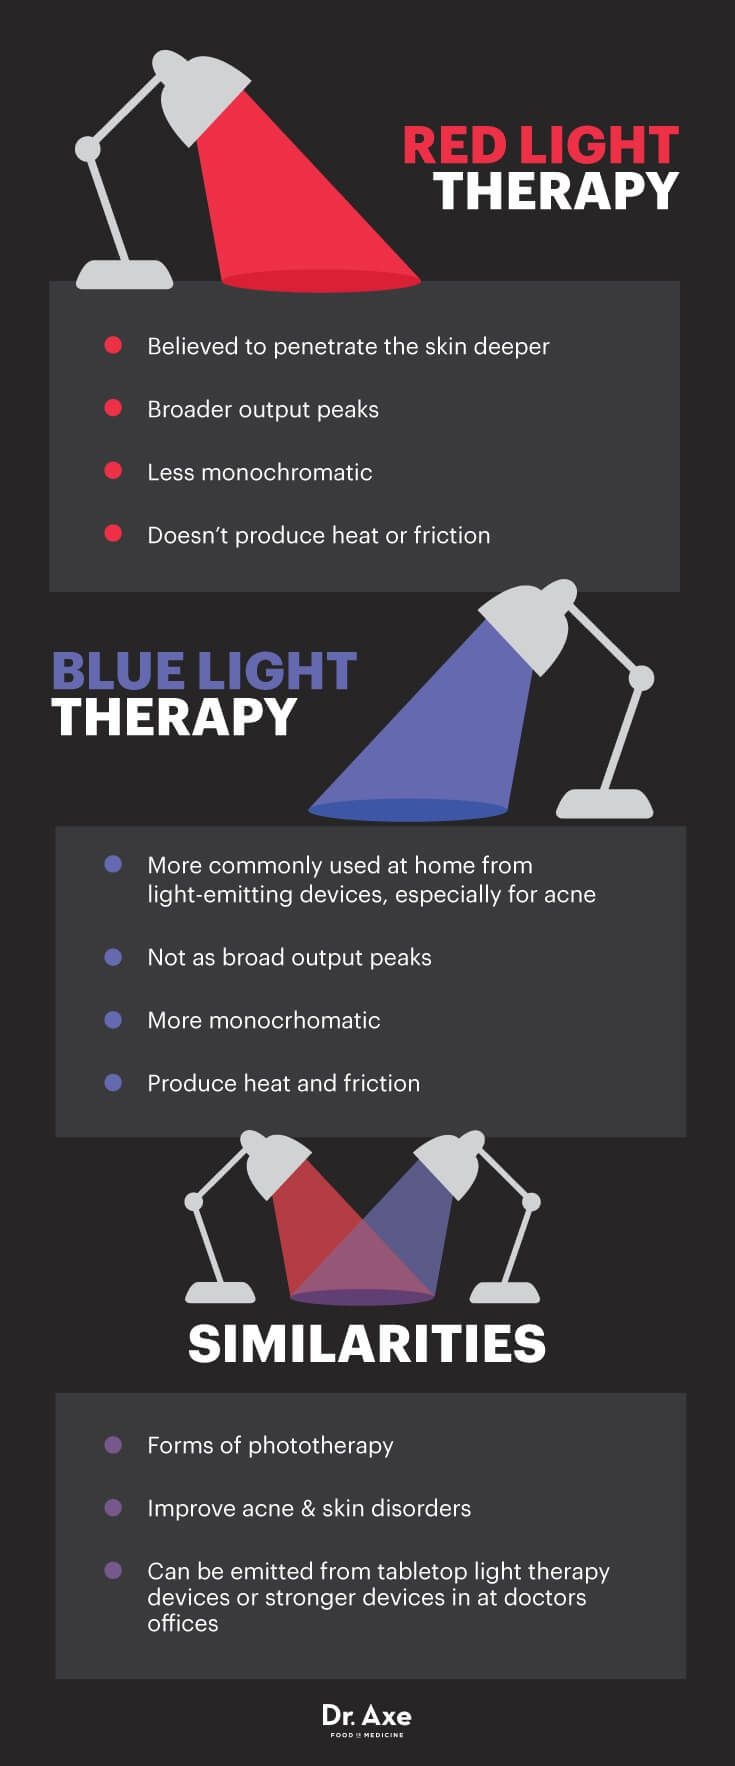 Acne Light Therapy Mask En iyi 17 fikir, Red Light Therapy Pinterest'te